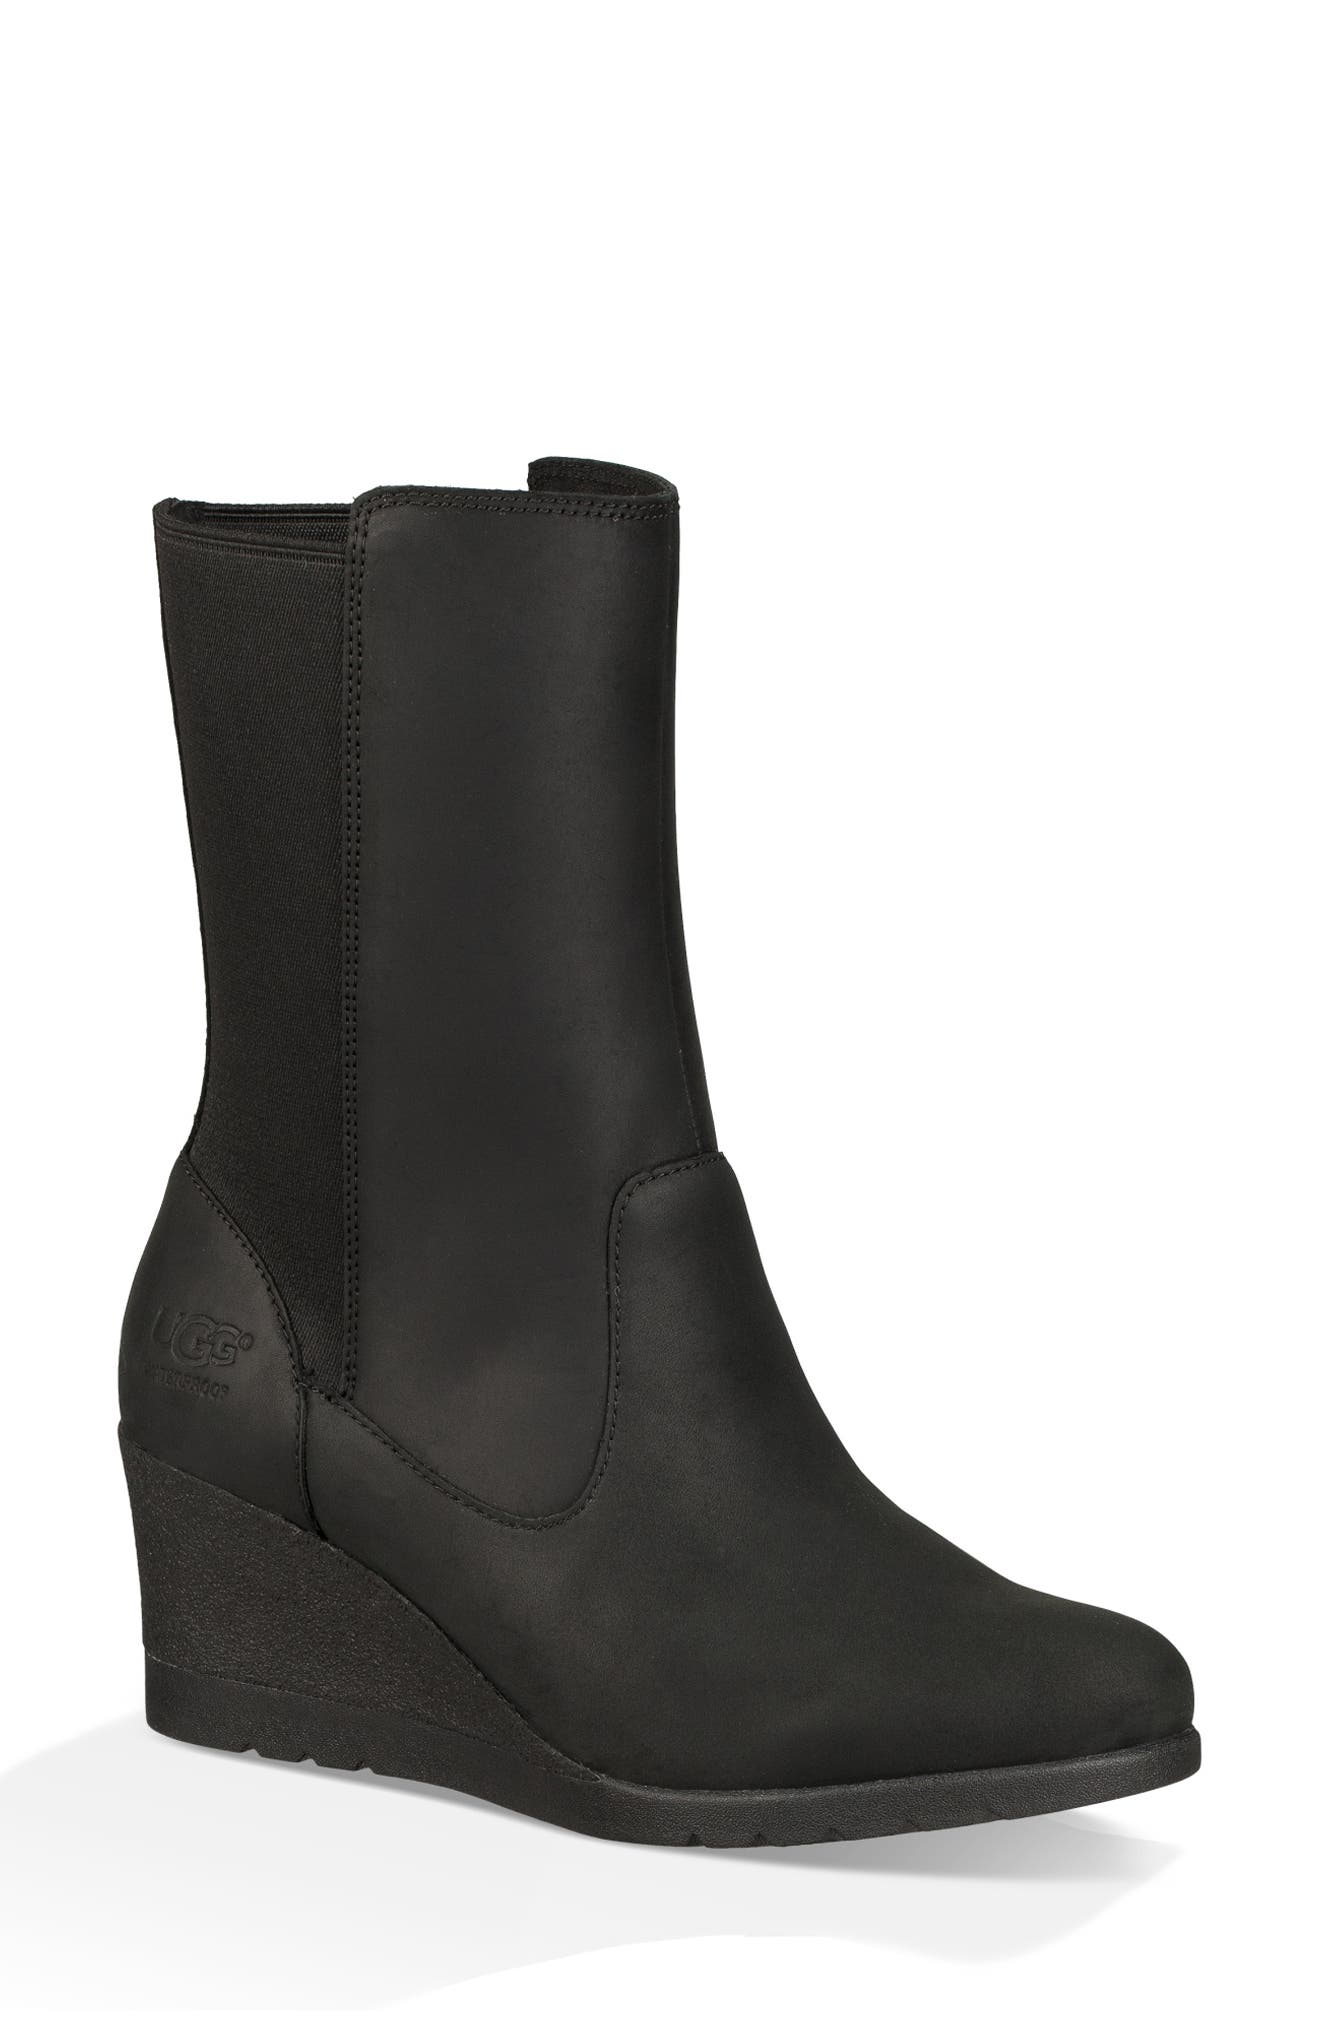 Coraline Waterproof Bootie,                             Main thumbnail 1, color,                             BLACK LEATHER